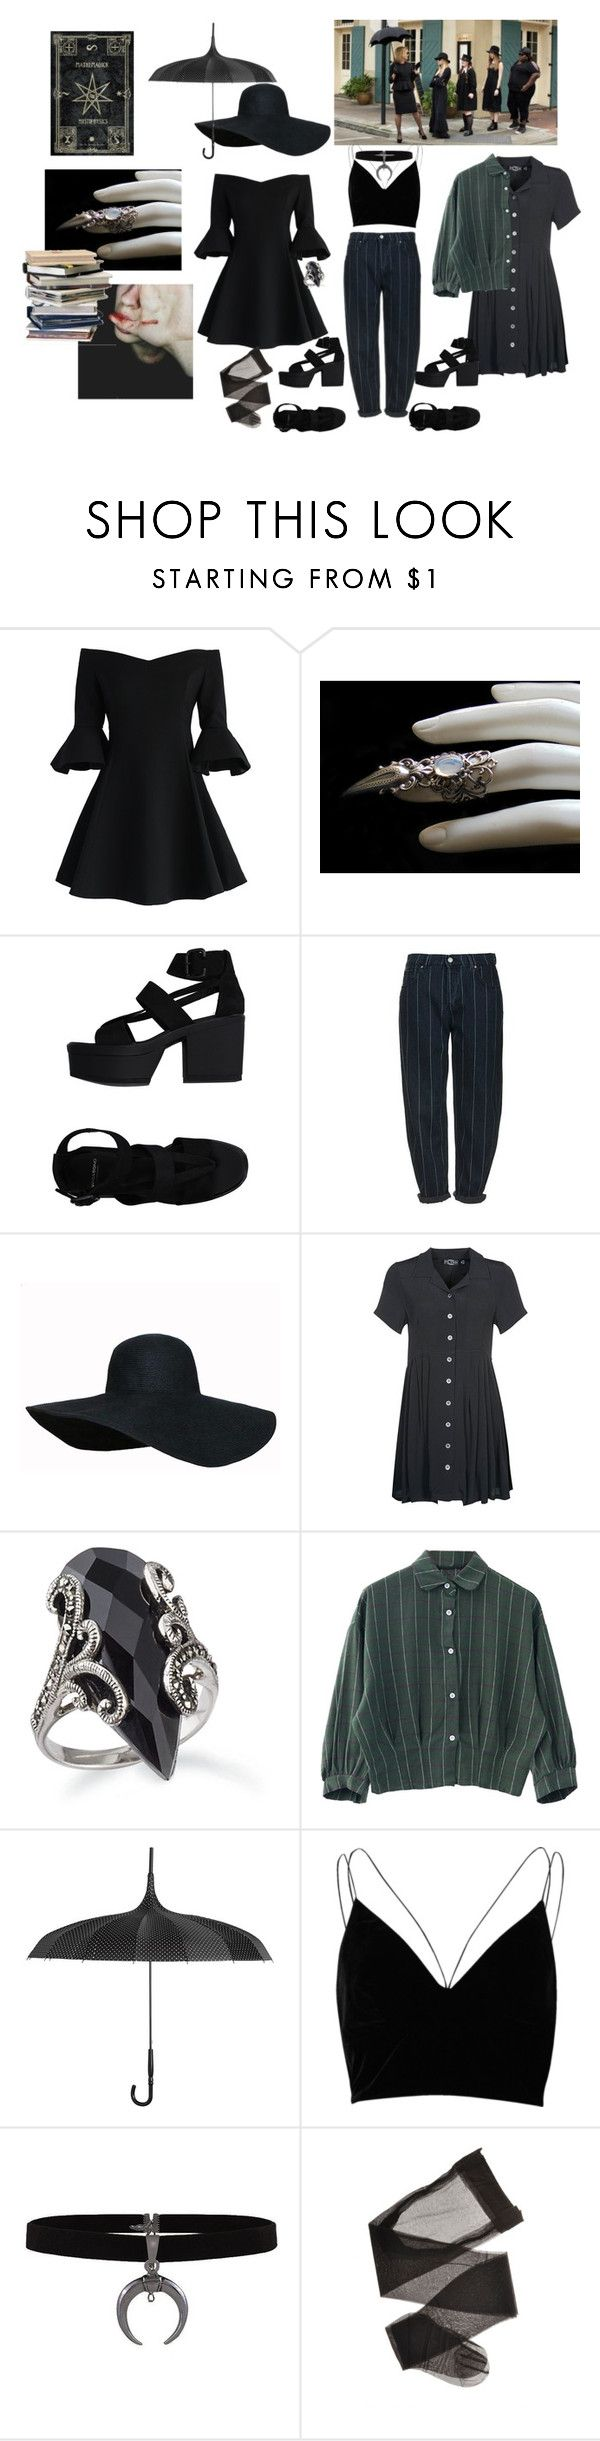 """""""Welcome to the Coven"""" by killertears ❤ liked on Polyvore featuring Chicwish, Vagabond, Topshop, Evil Twin, River Island and vintage"""